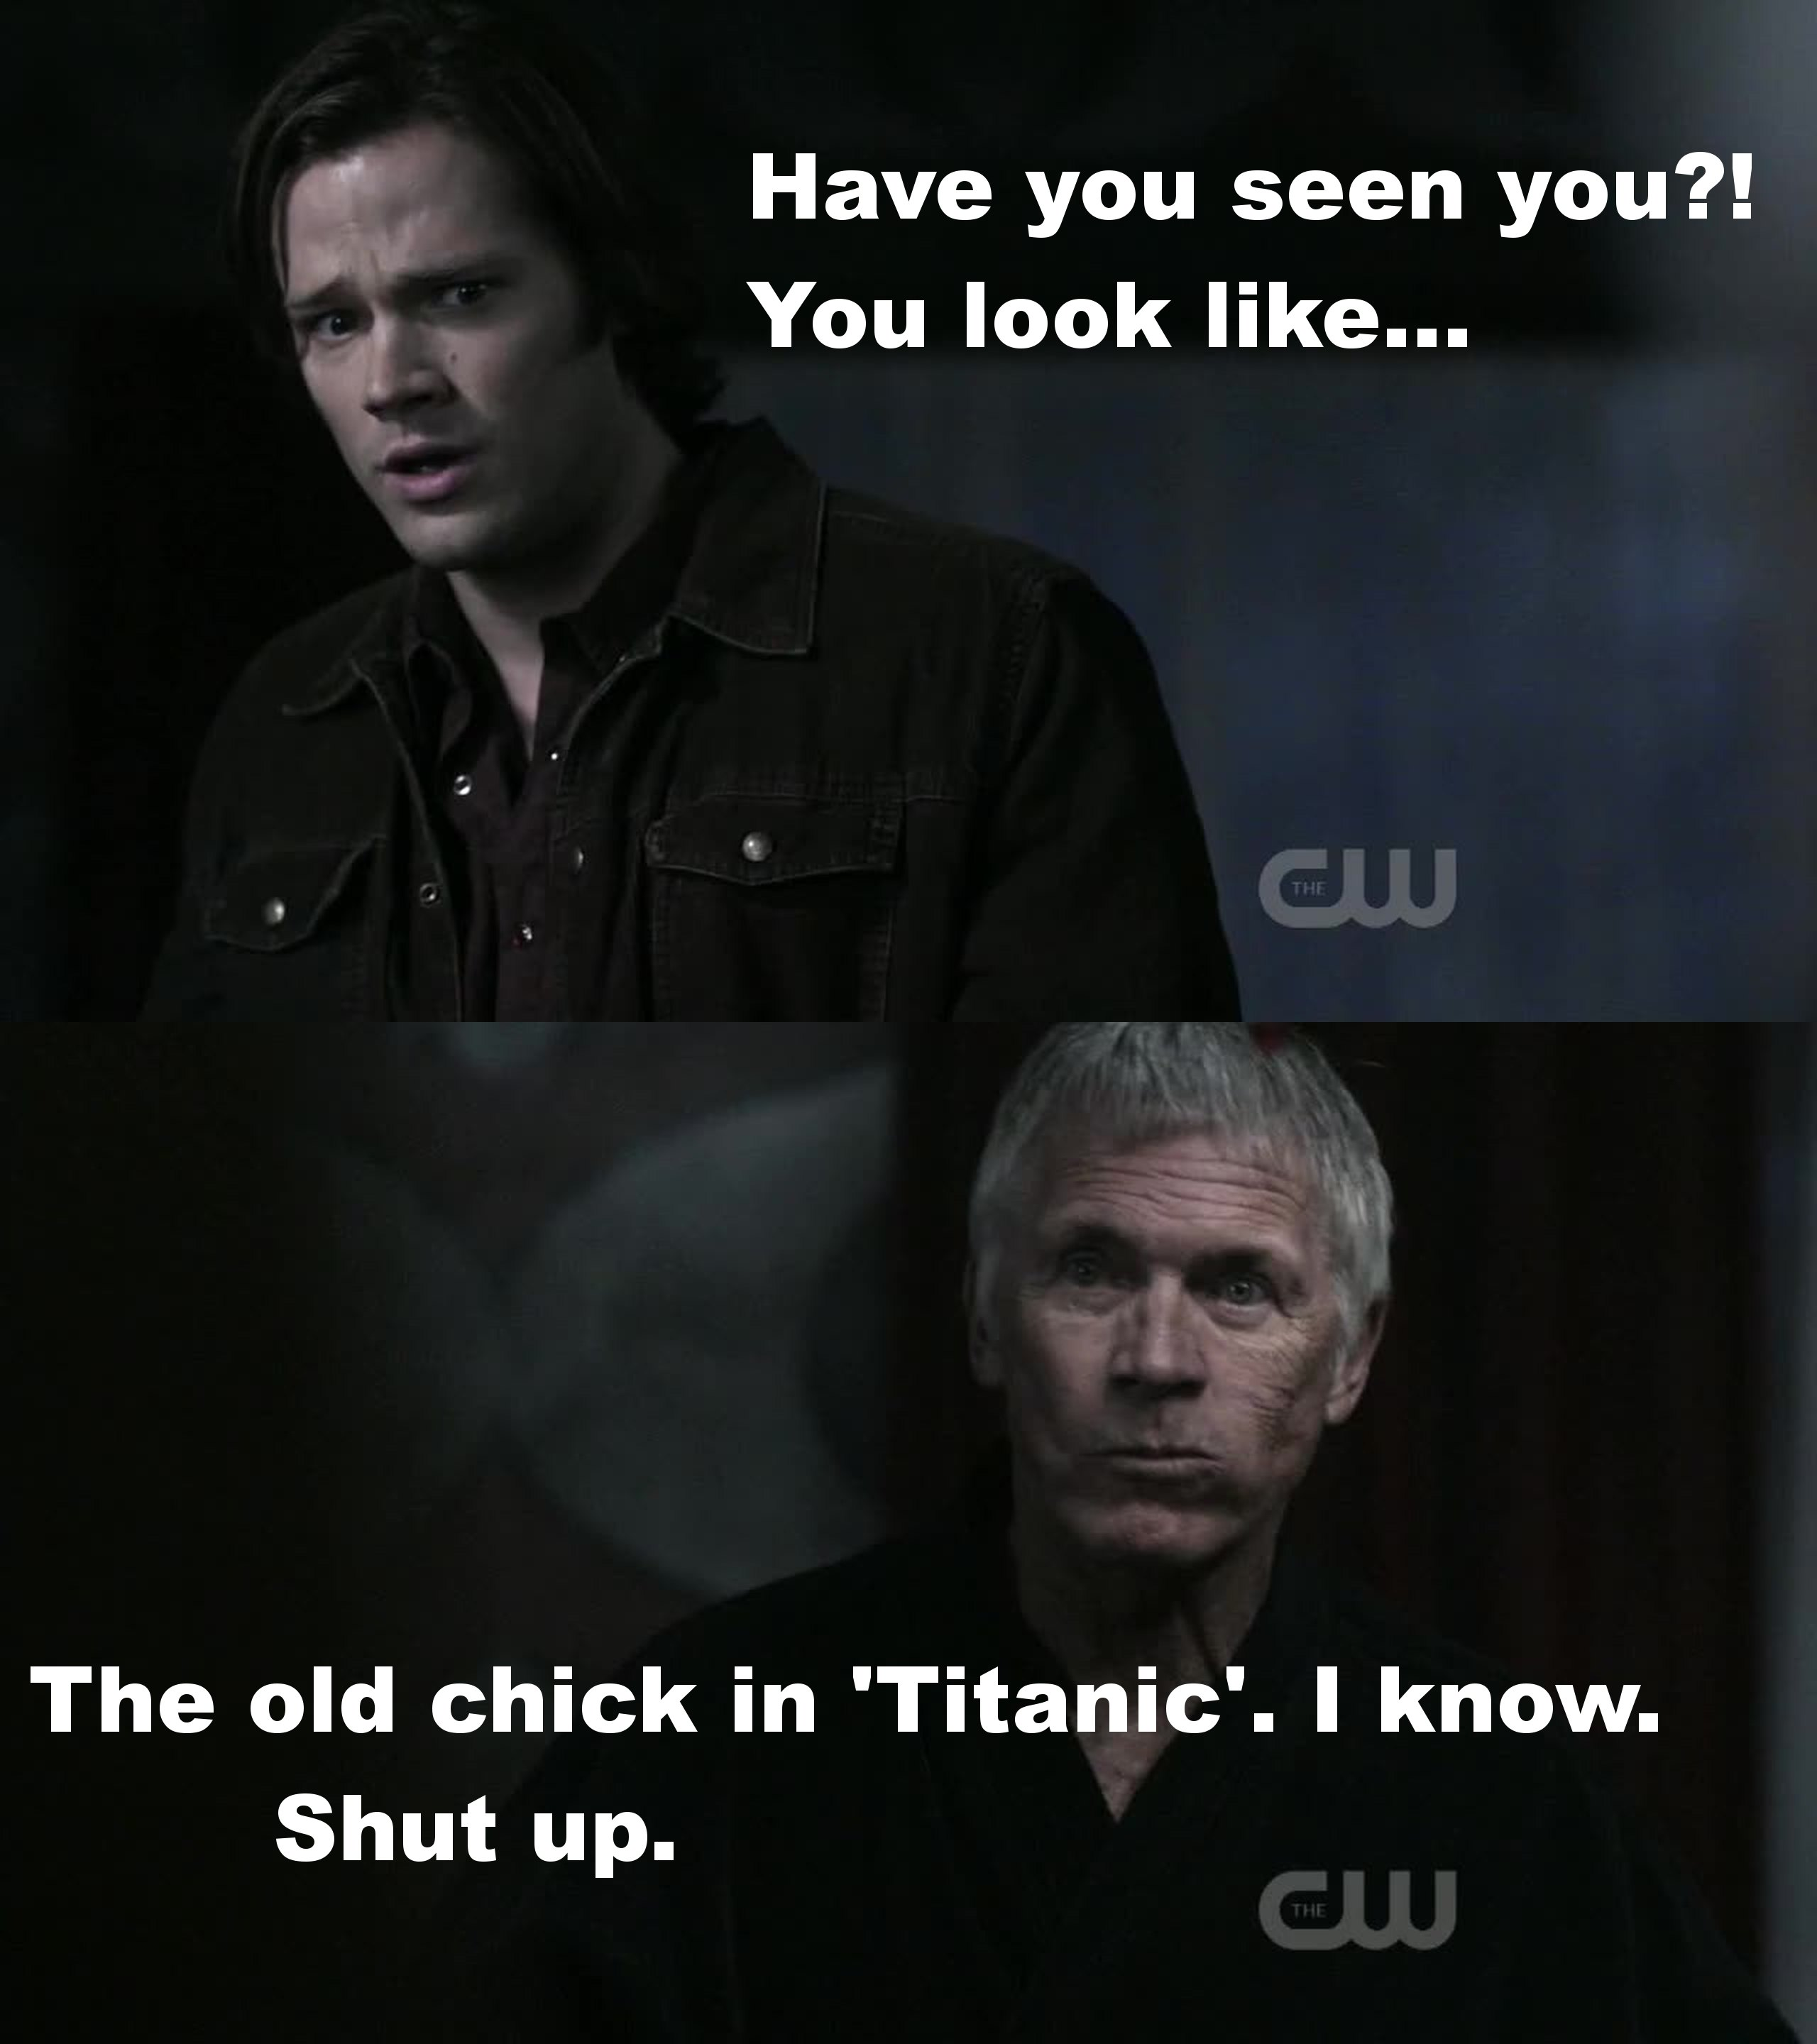 Not sure how this episode fits in the main plot.. But it was hilarious, that's for sure! ^_^